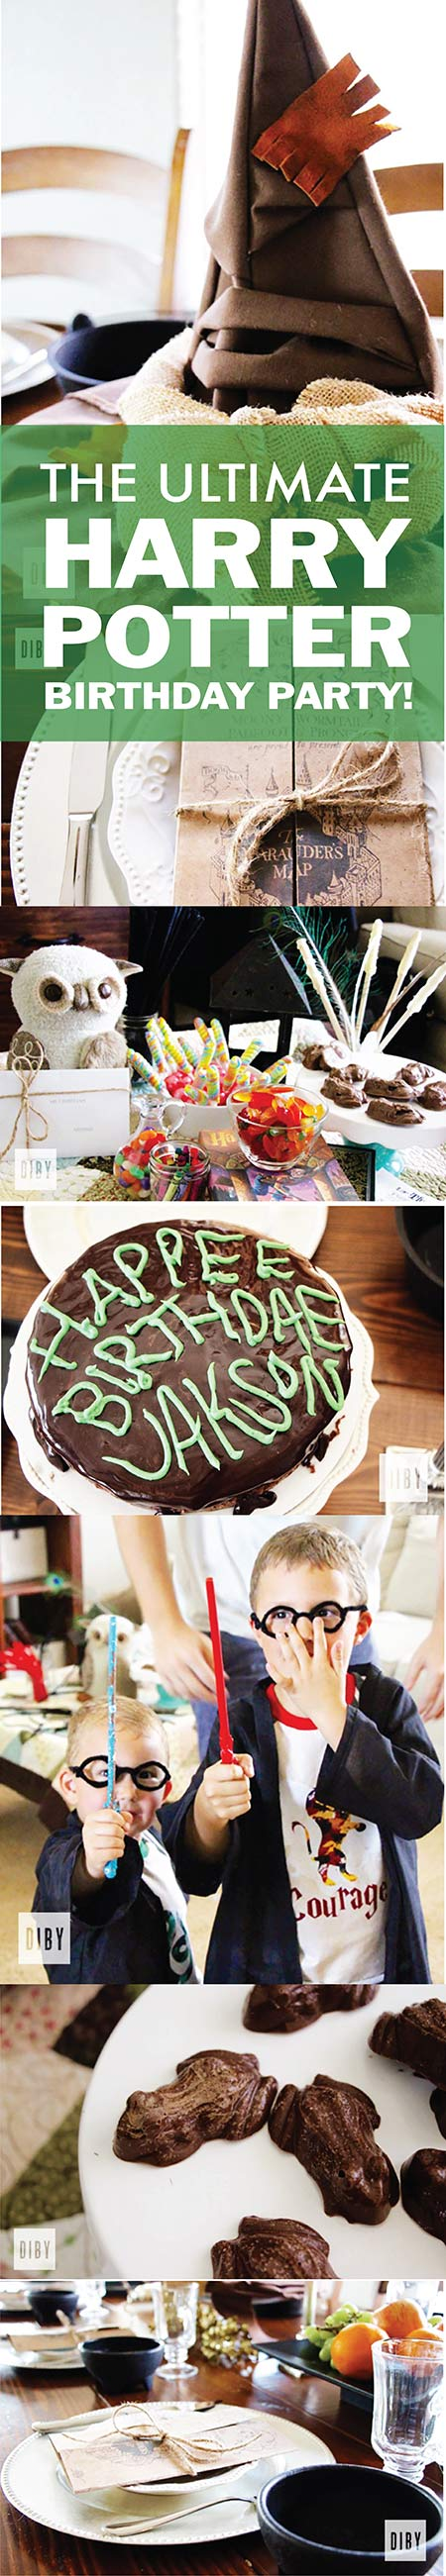 The Ultimate DIY Harry Potter Birthday Party!